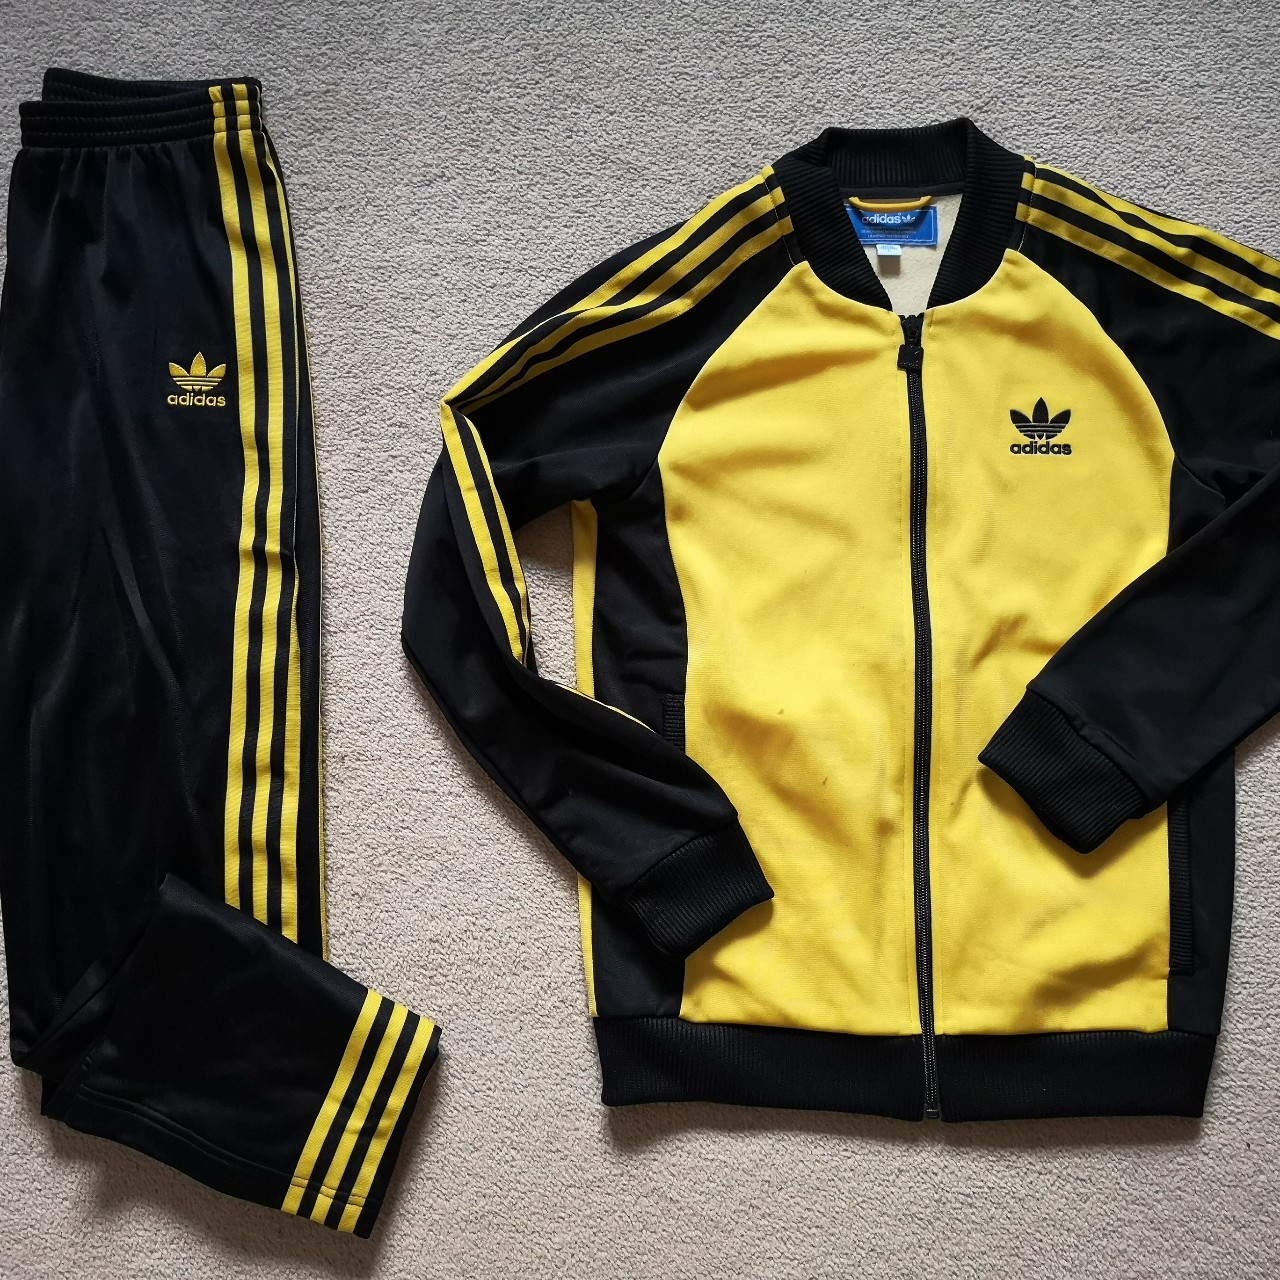 Adidas Retro Tracksuit in Yellow and